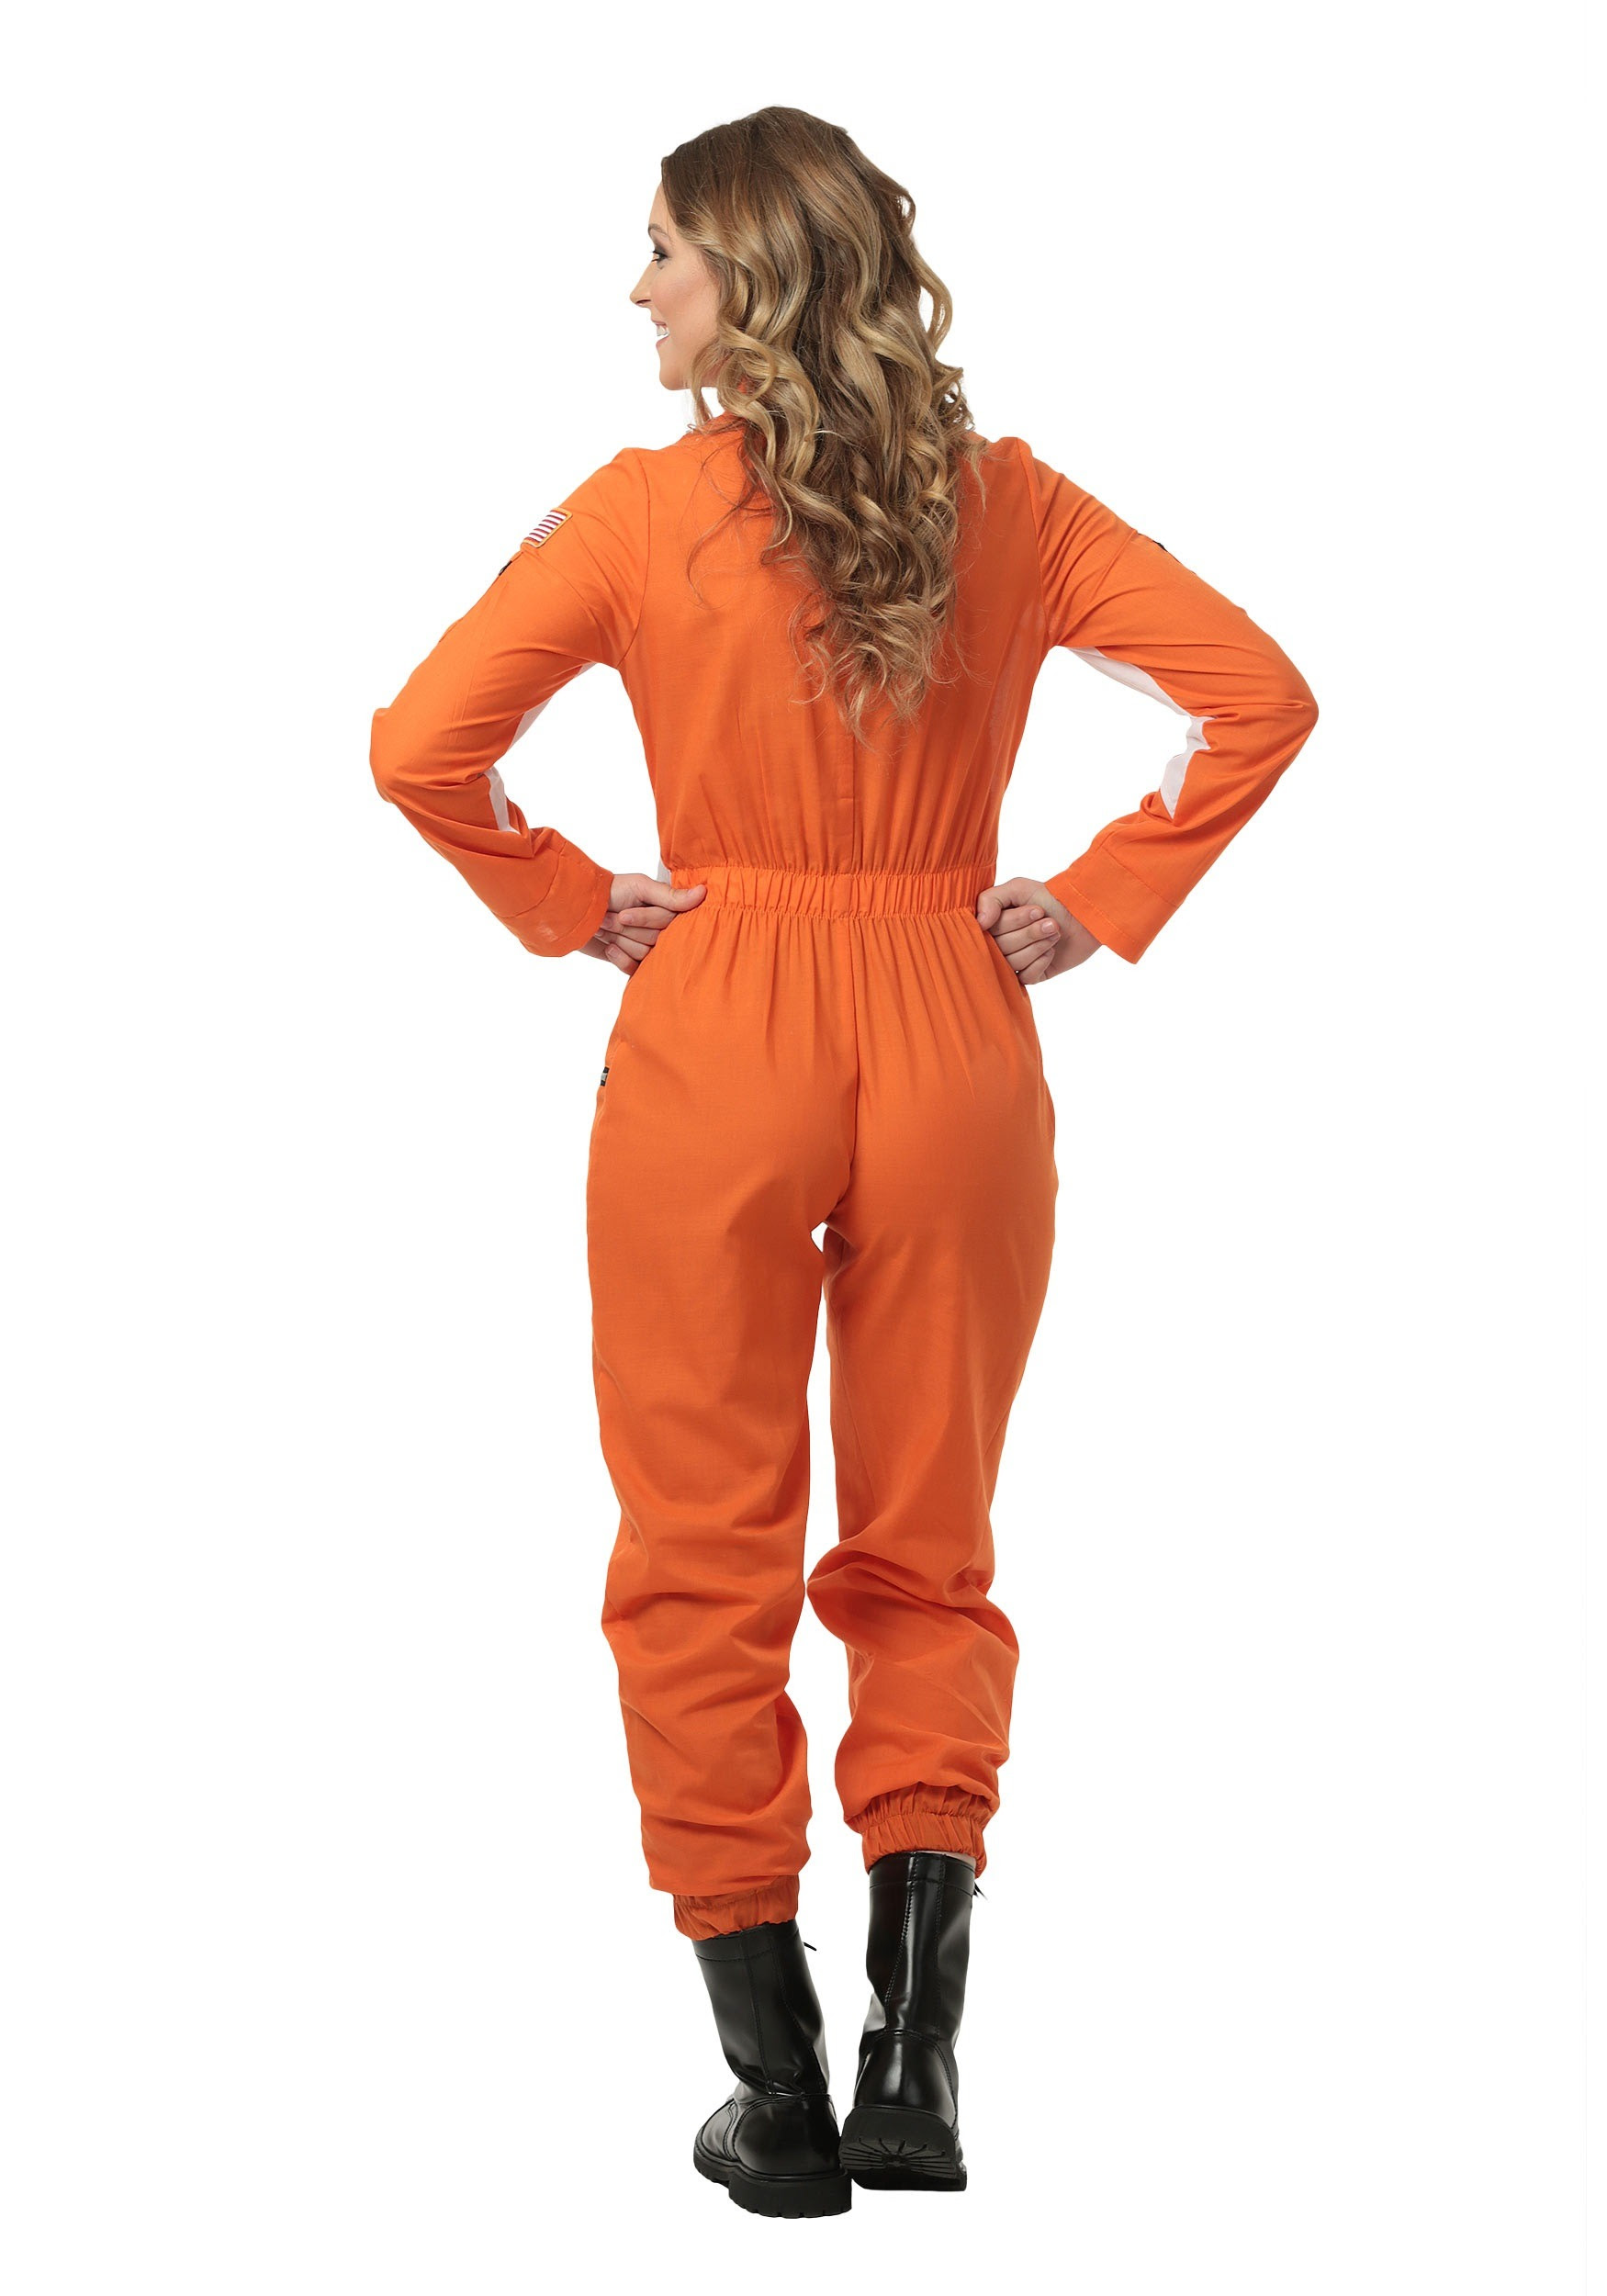 astronaut jumpsuit for women's